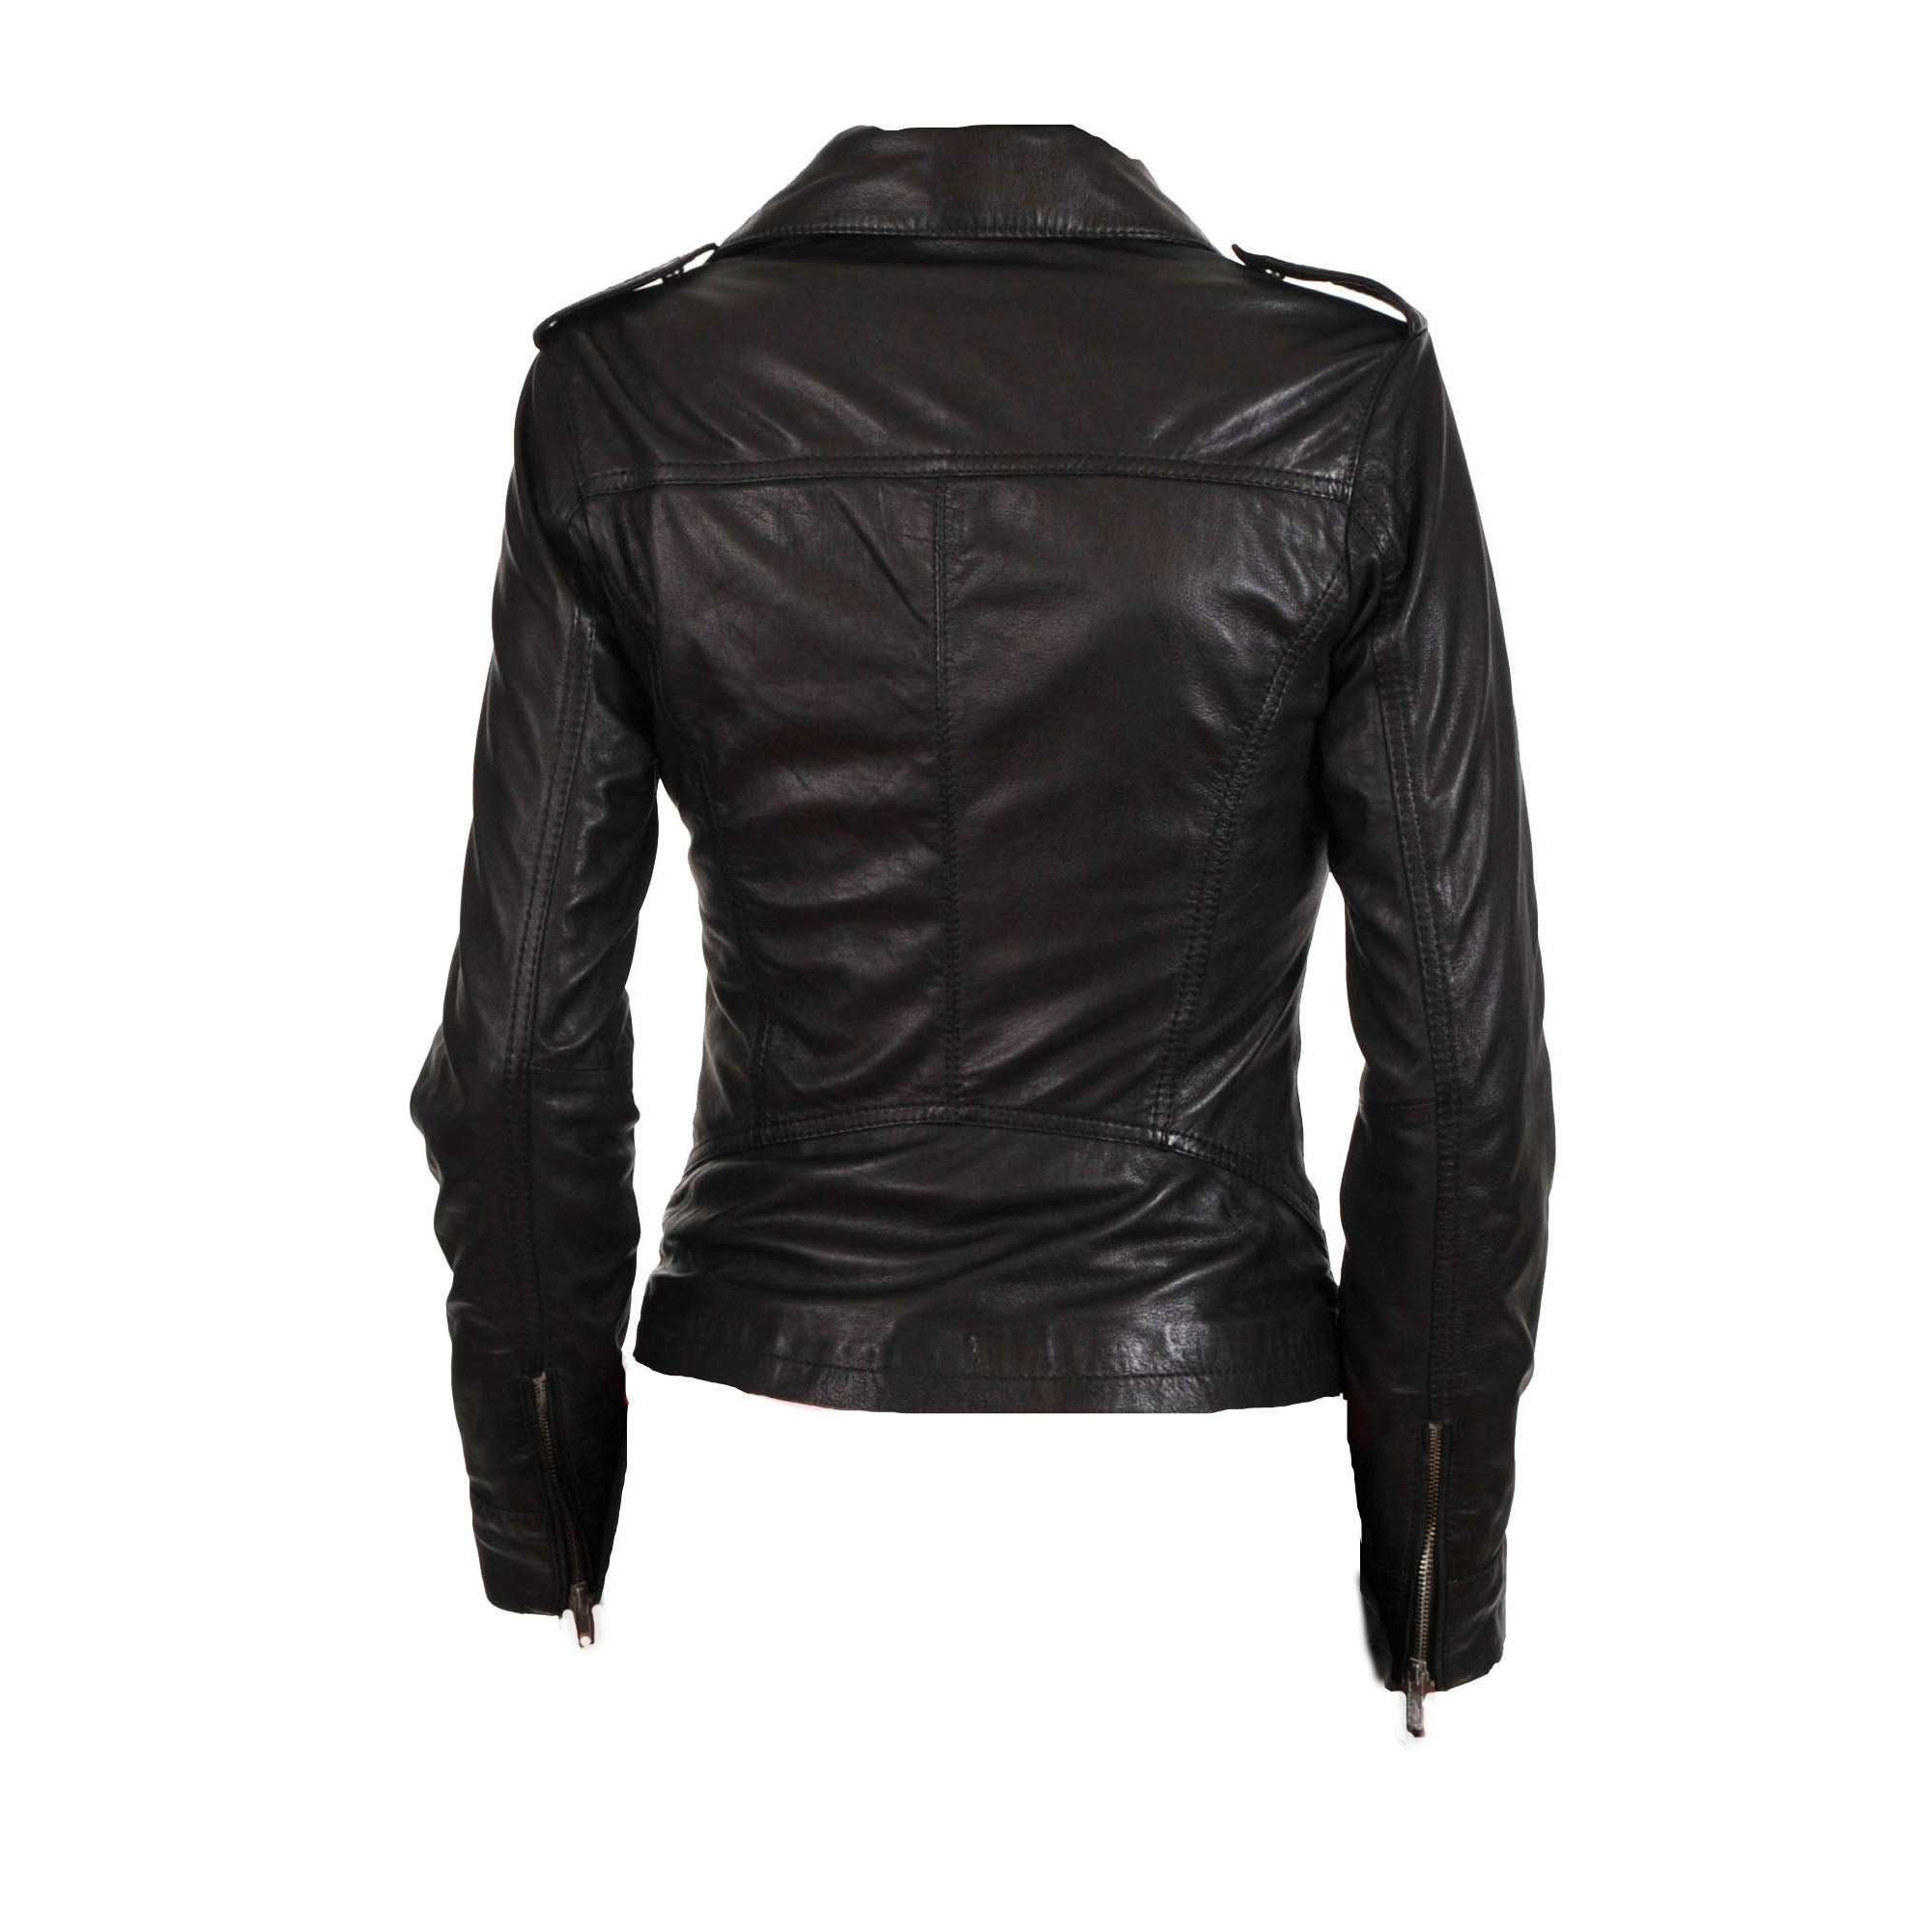 Women's classic biker style leather jacket - Lusso Leather - 2